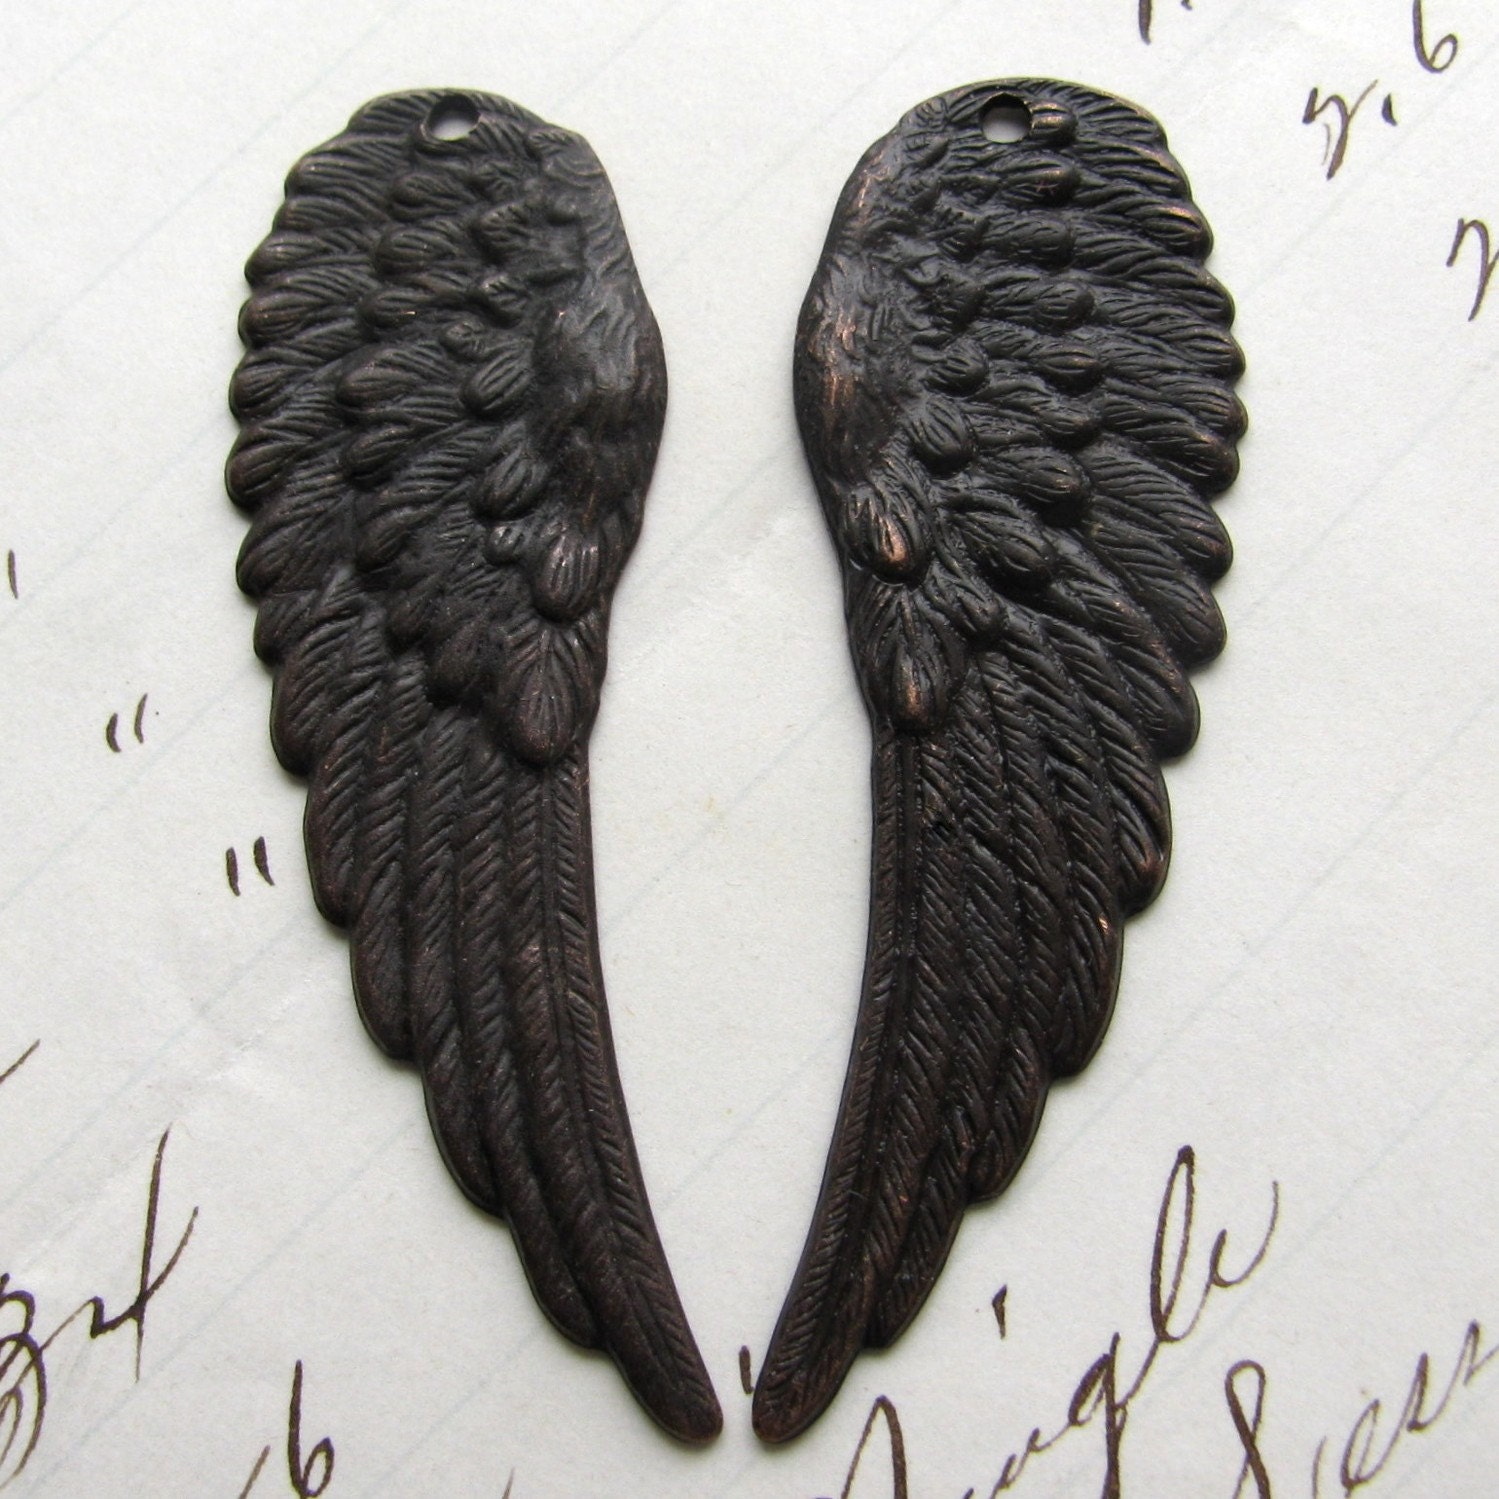 Fallen Angel Wings with holes - antiqued dark brass - 46mm  2 wings Fallen Angels Wings